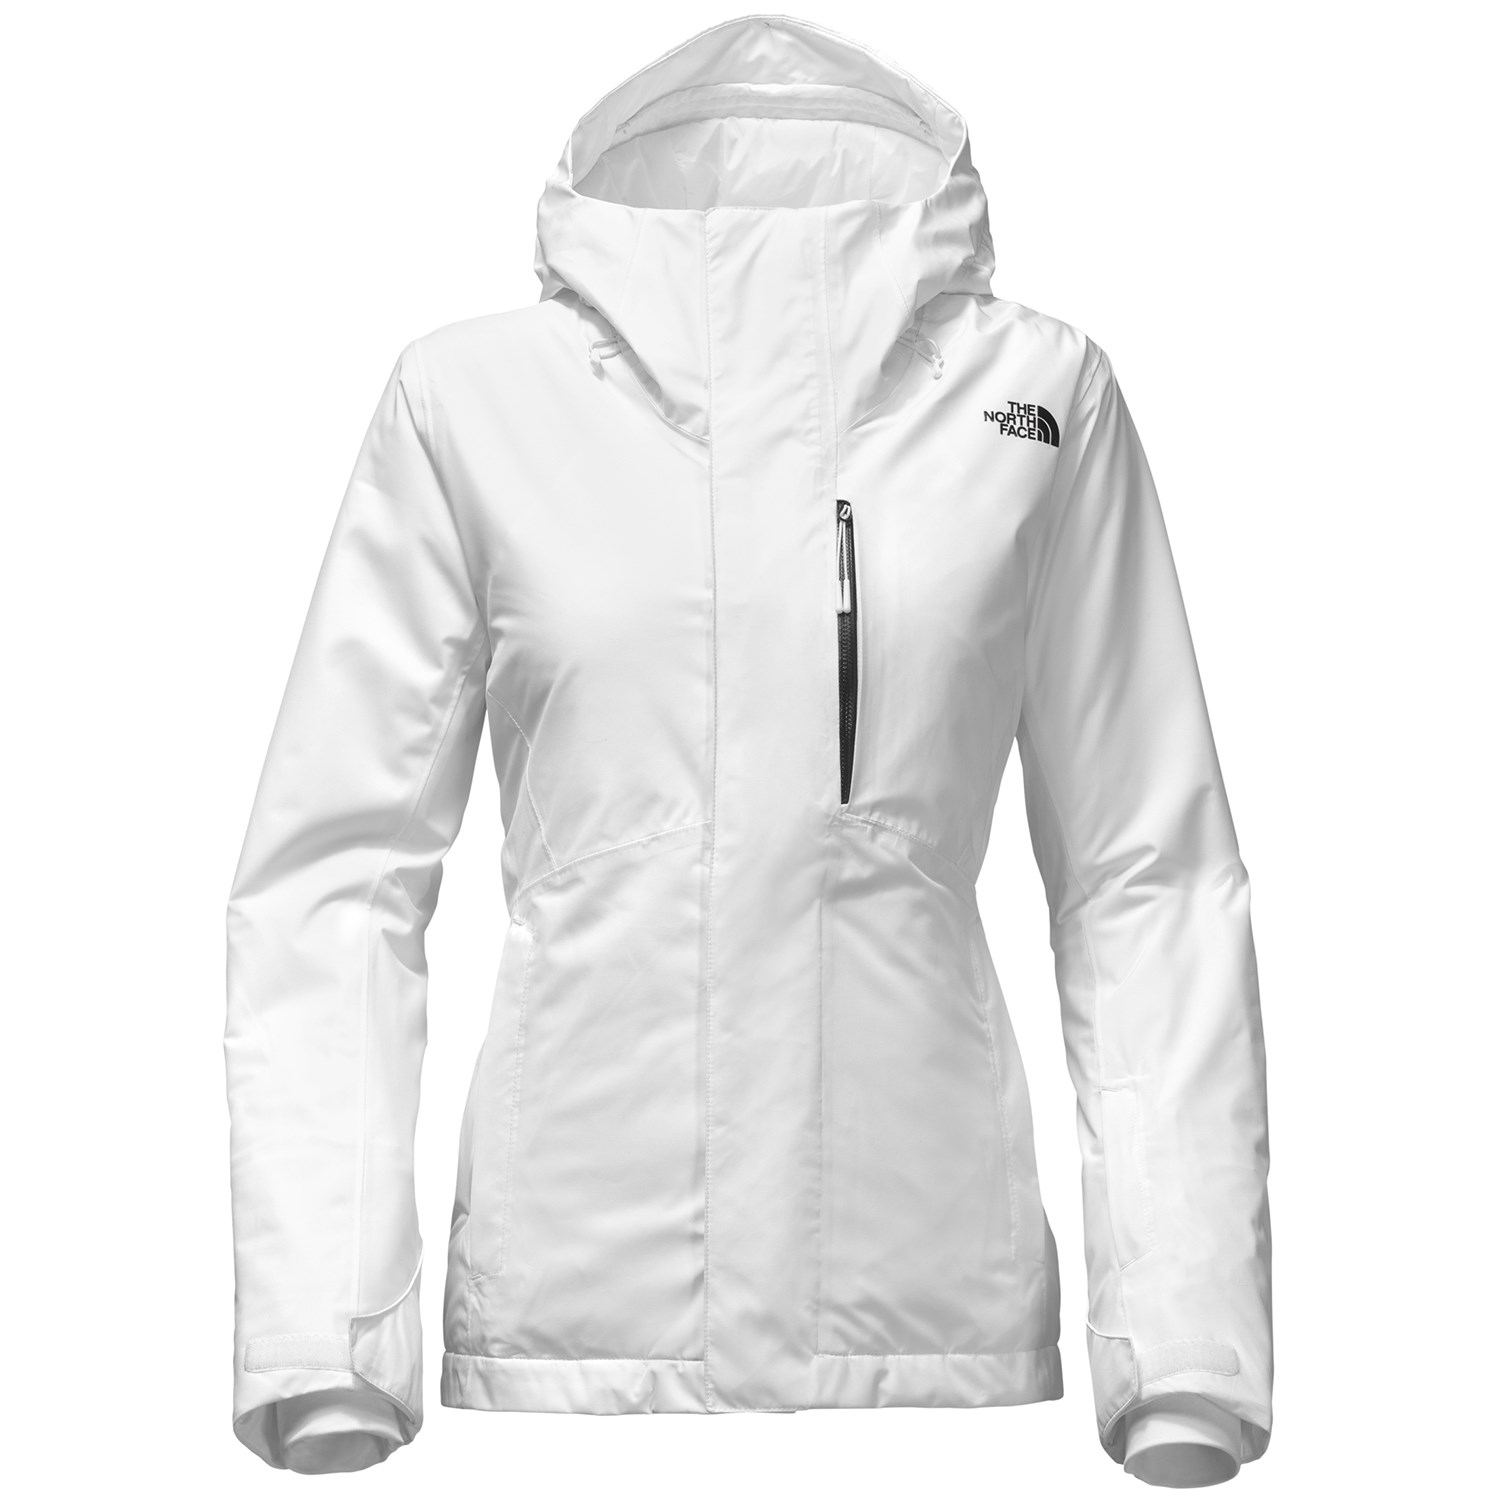 0a1e6f61b5 The North Face Descendit Jacket - Women s